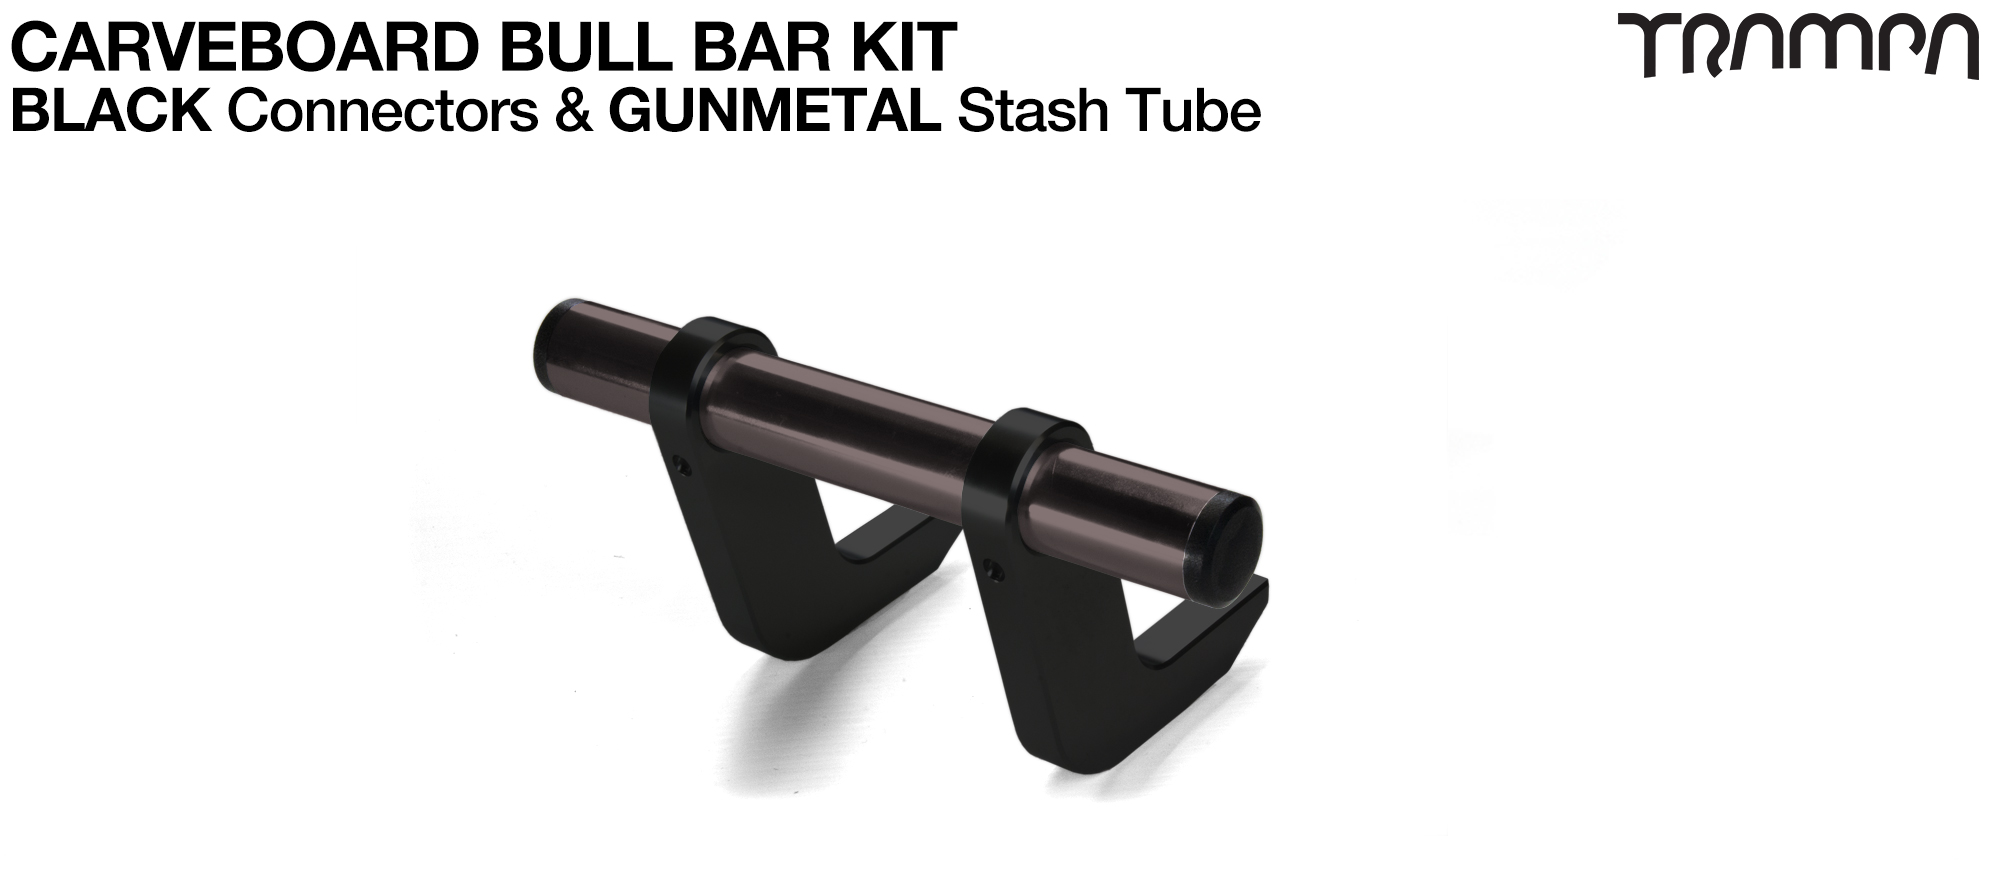 BLACK Uprights & GUNMETAL Crossbar BULL BARS for CARVE BOARDS using T6 Heat Treated CNC'd AluminIum Clamps, Hollow Aluminium Stash Tubes with Rubber end bungs